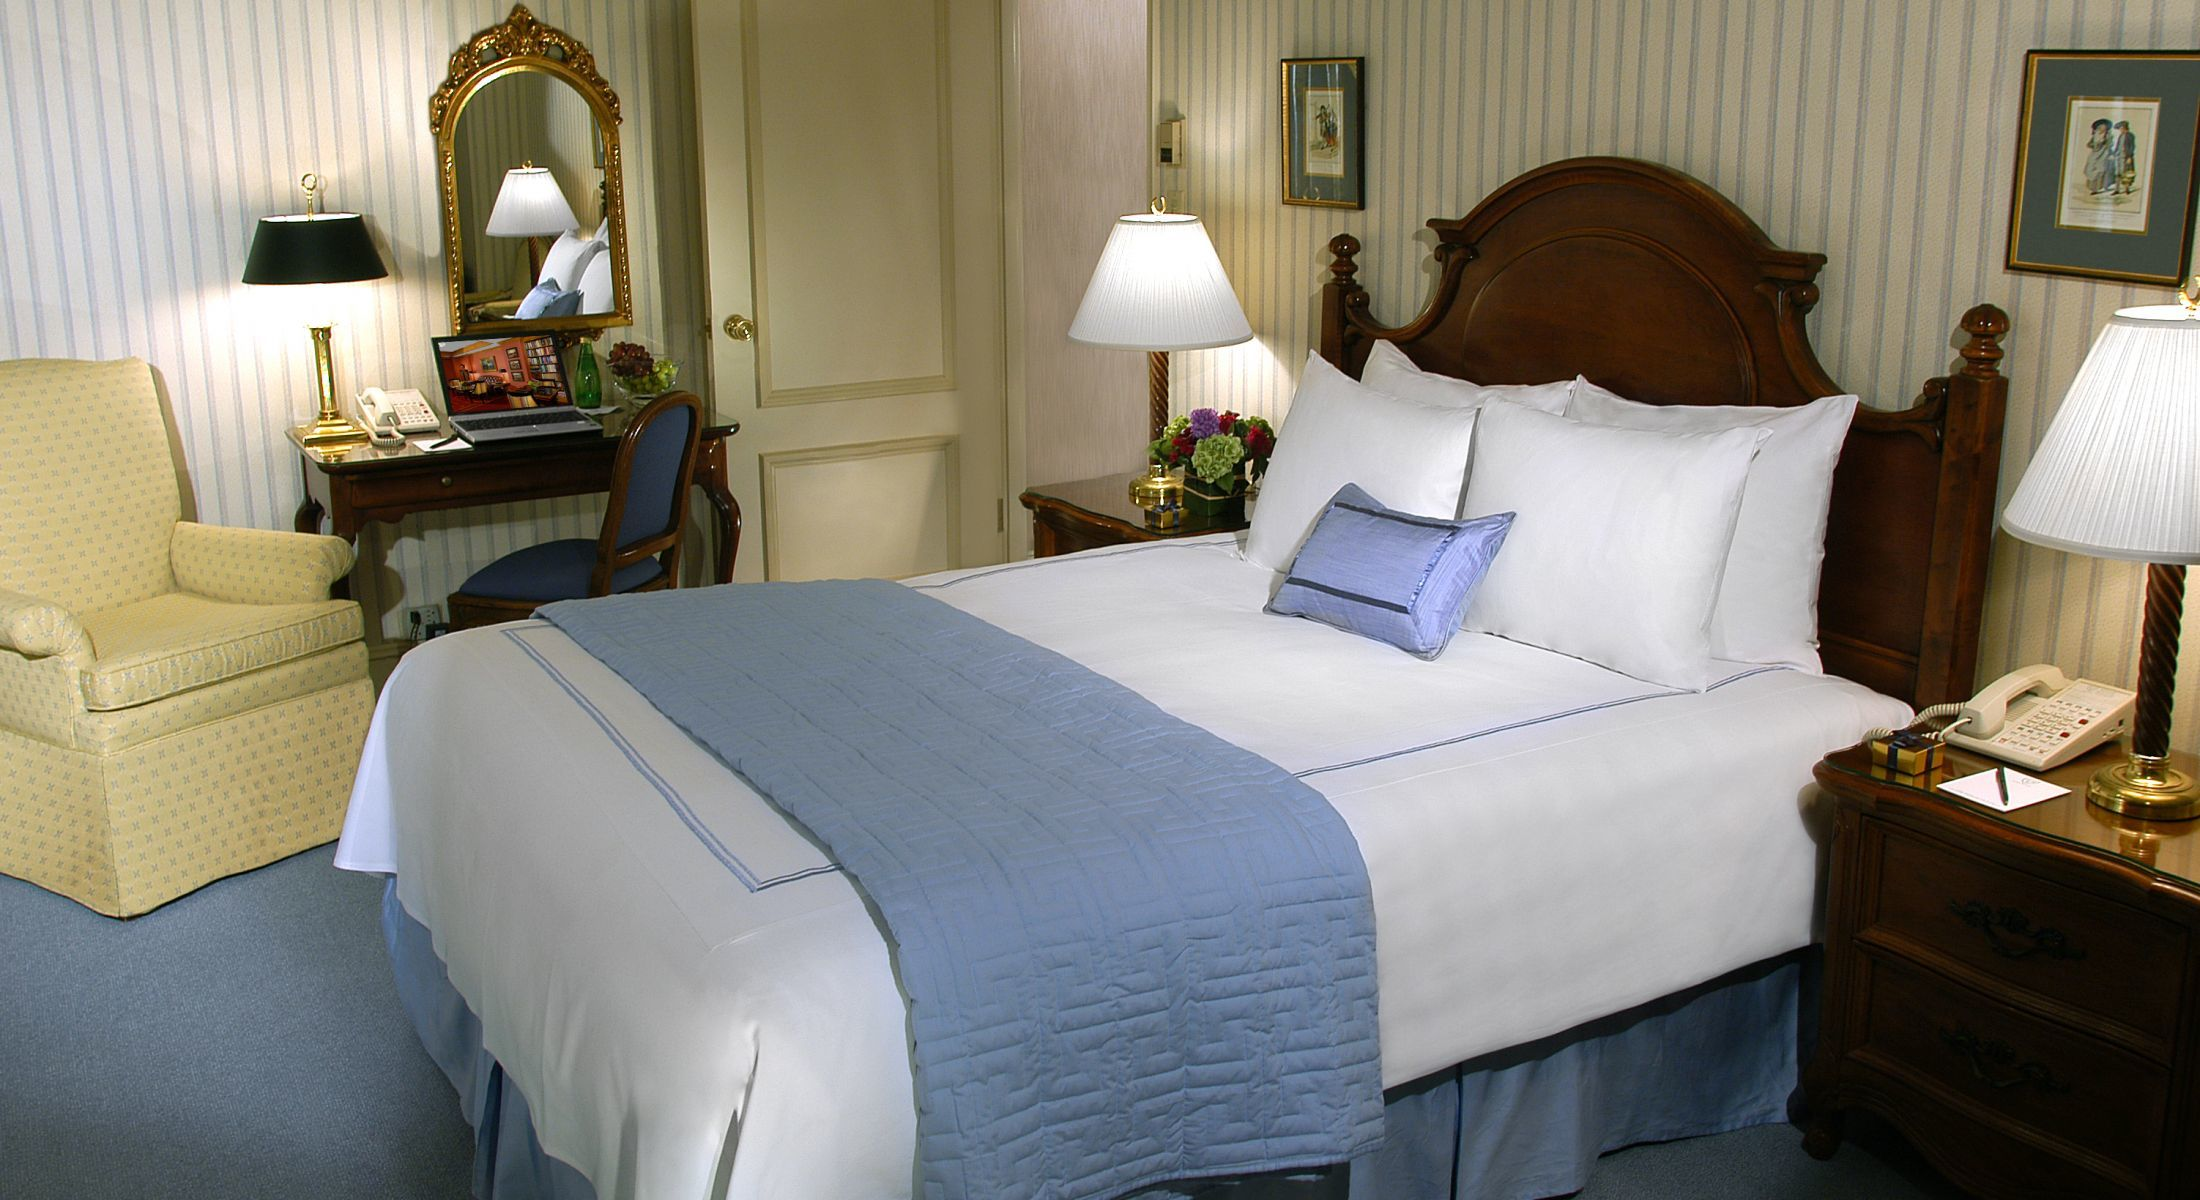 Our Deluxe Accessible Queen rooms are perfect for 1-2 guests and are ADA compliant